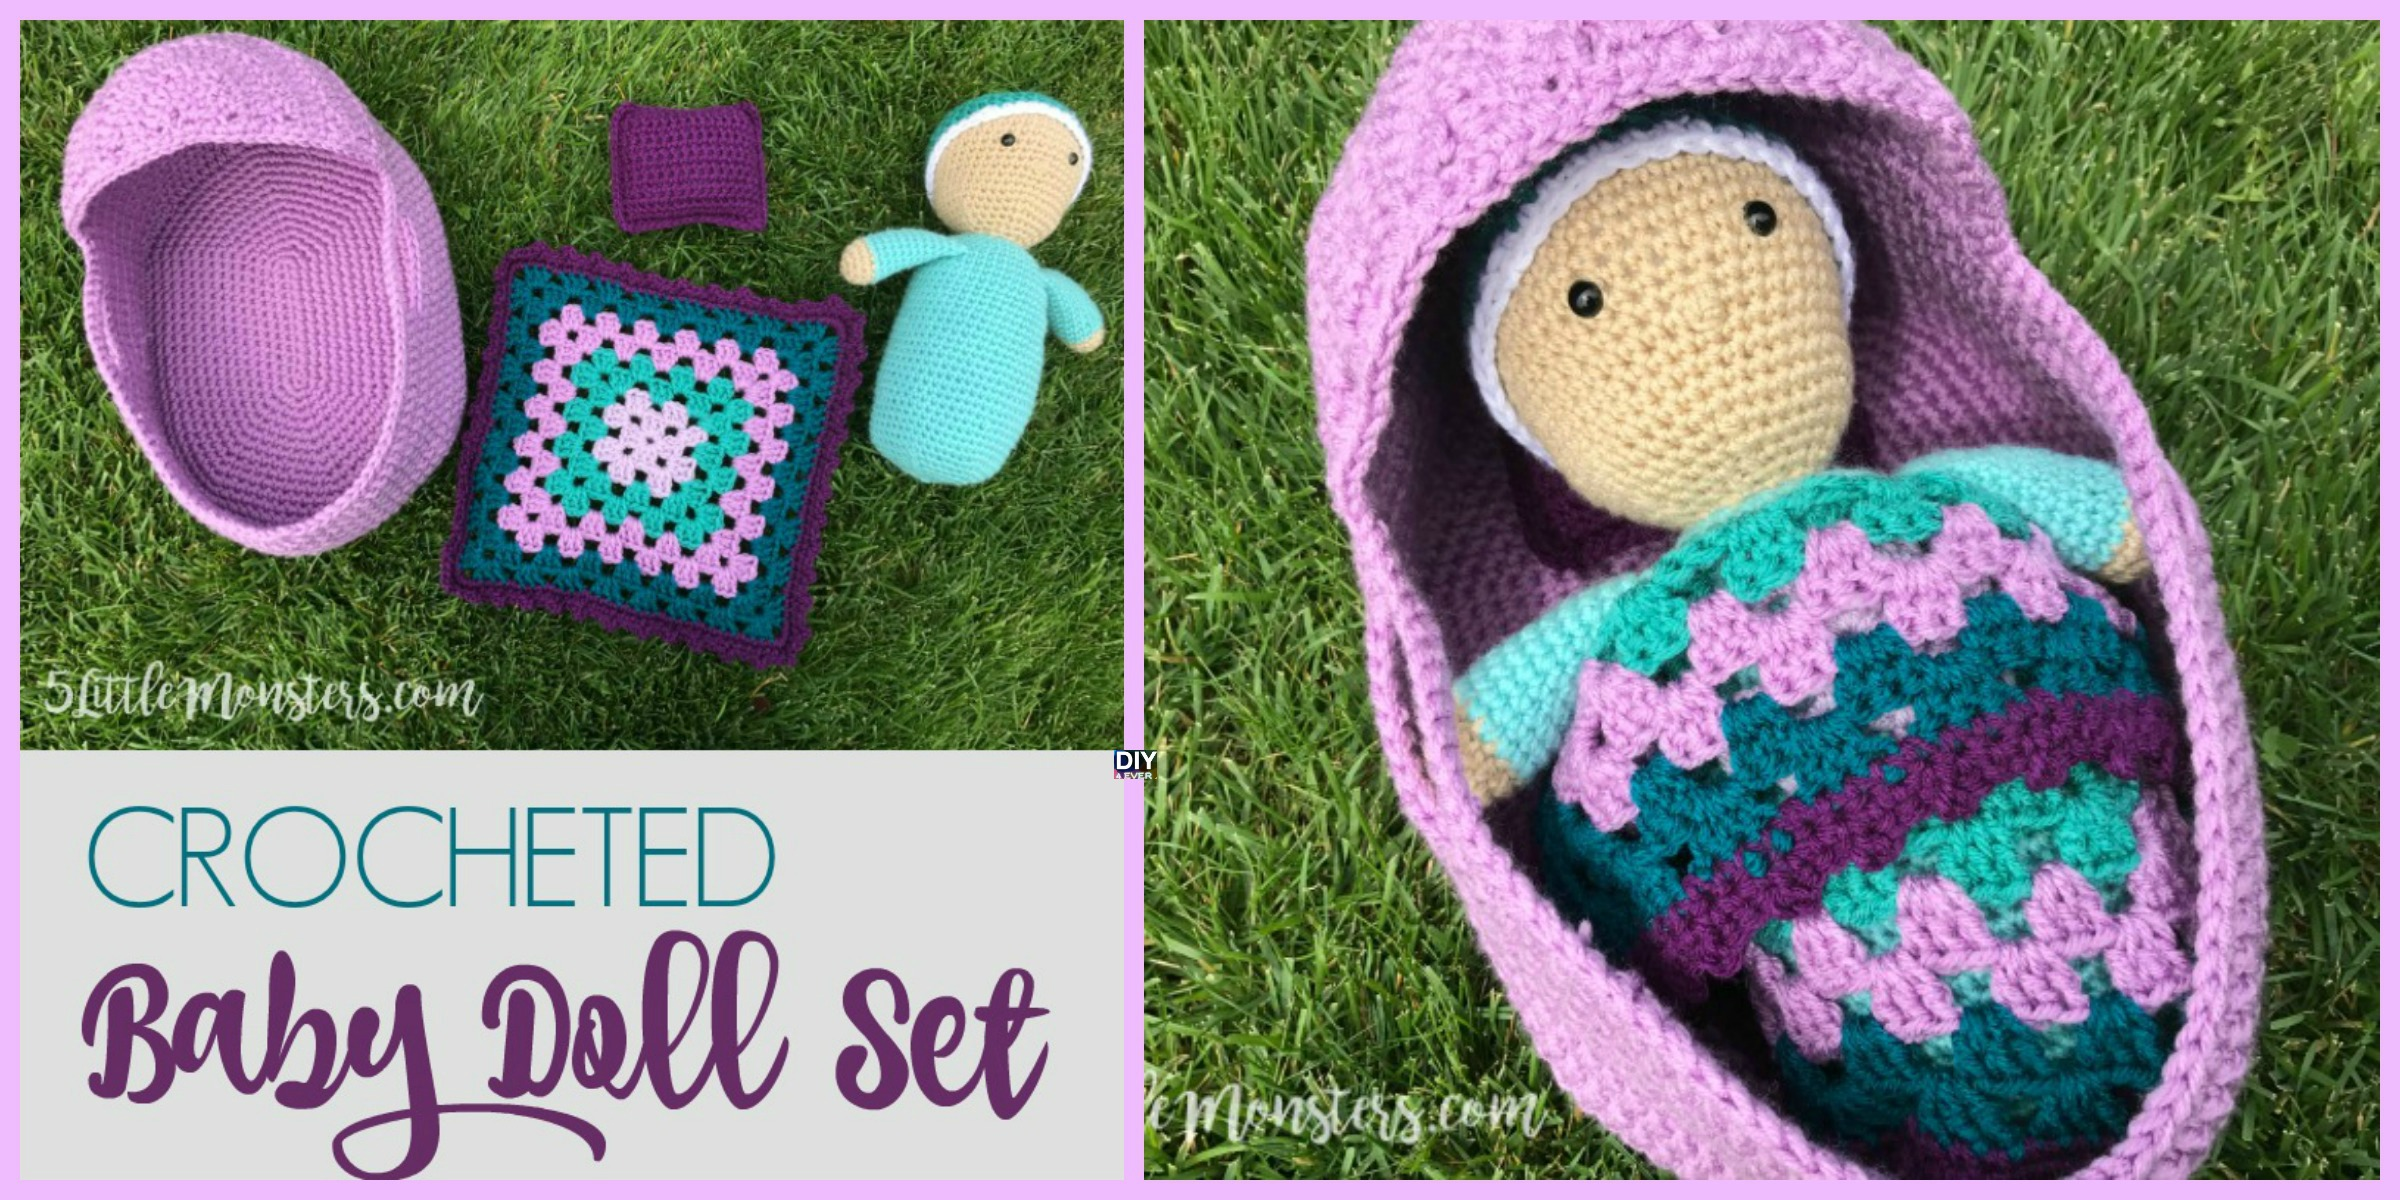 Crocheted Baby Doll Set – Free Pattern & Video